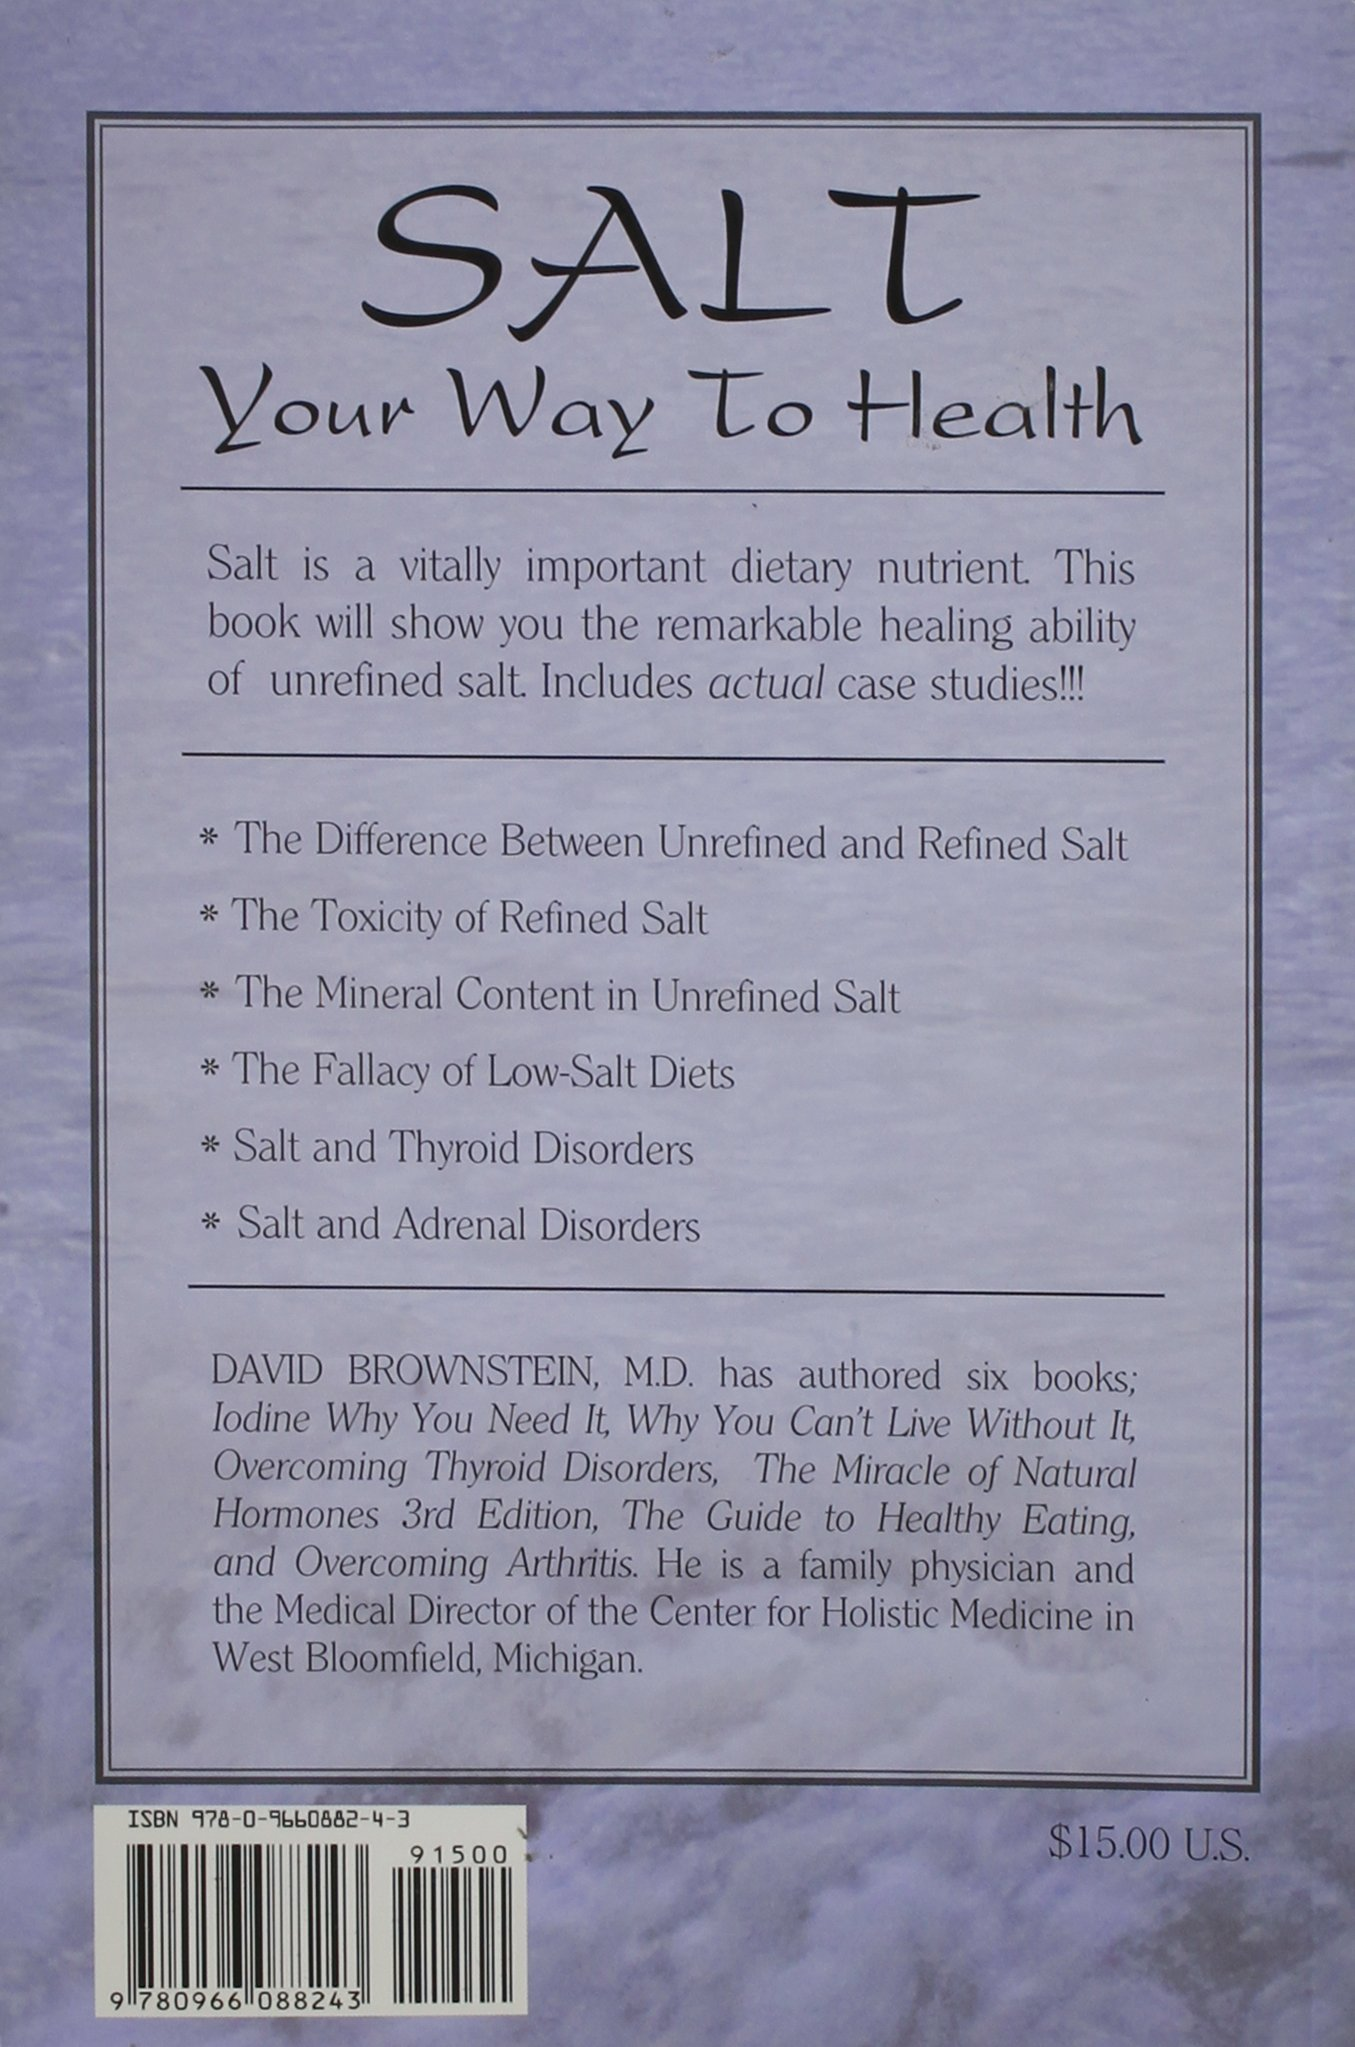 Salt Your Way to Health, 2nd Edition: MD David Brownstein: 9780966088243:  Amazon.com: Books